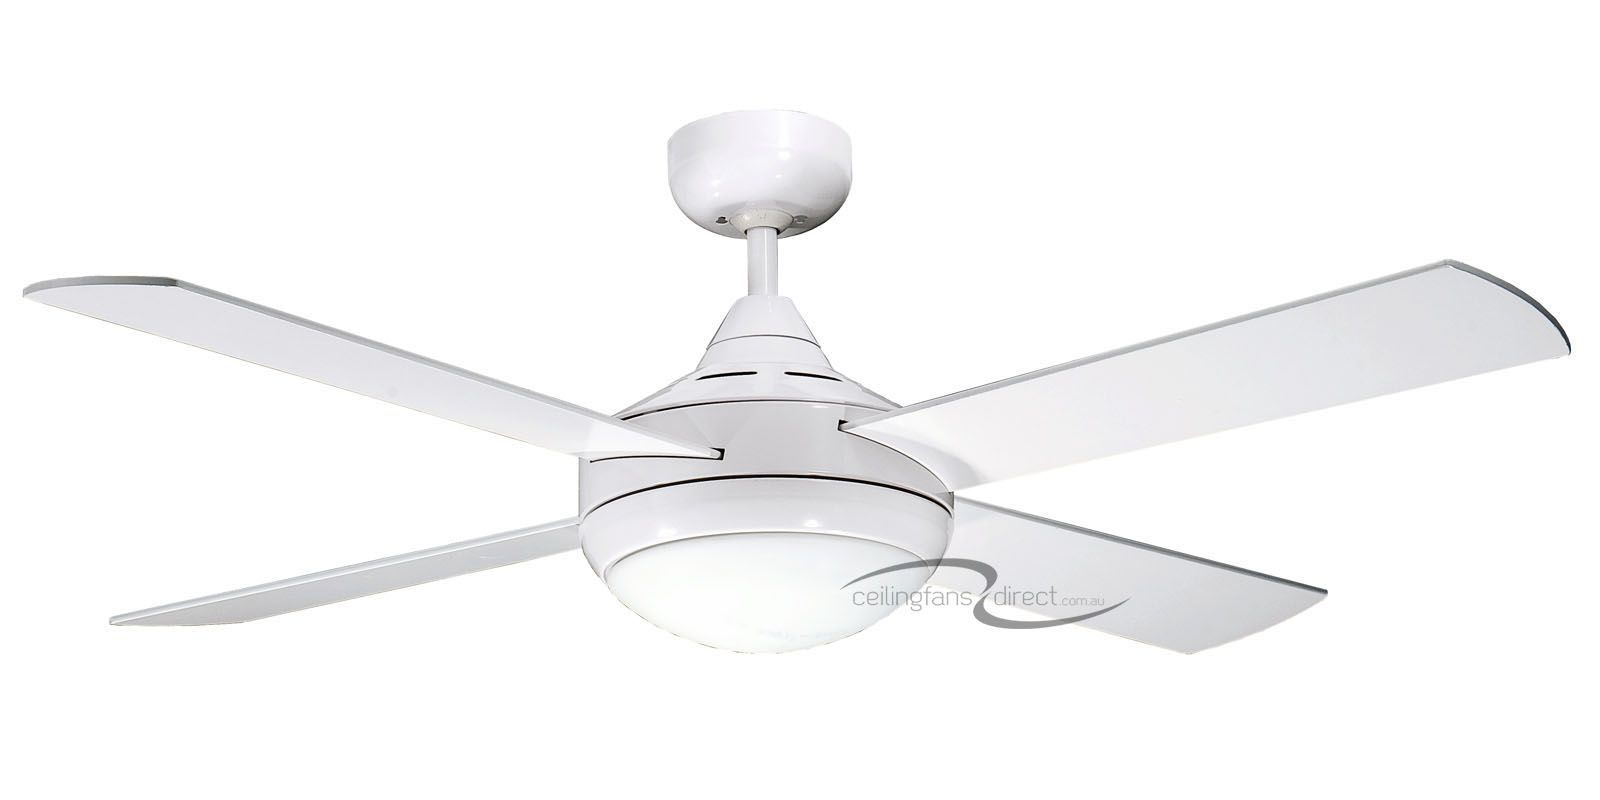 Popular Photo of Outdoor Ceiling Fans With Remote Control Lights